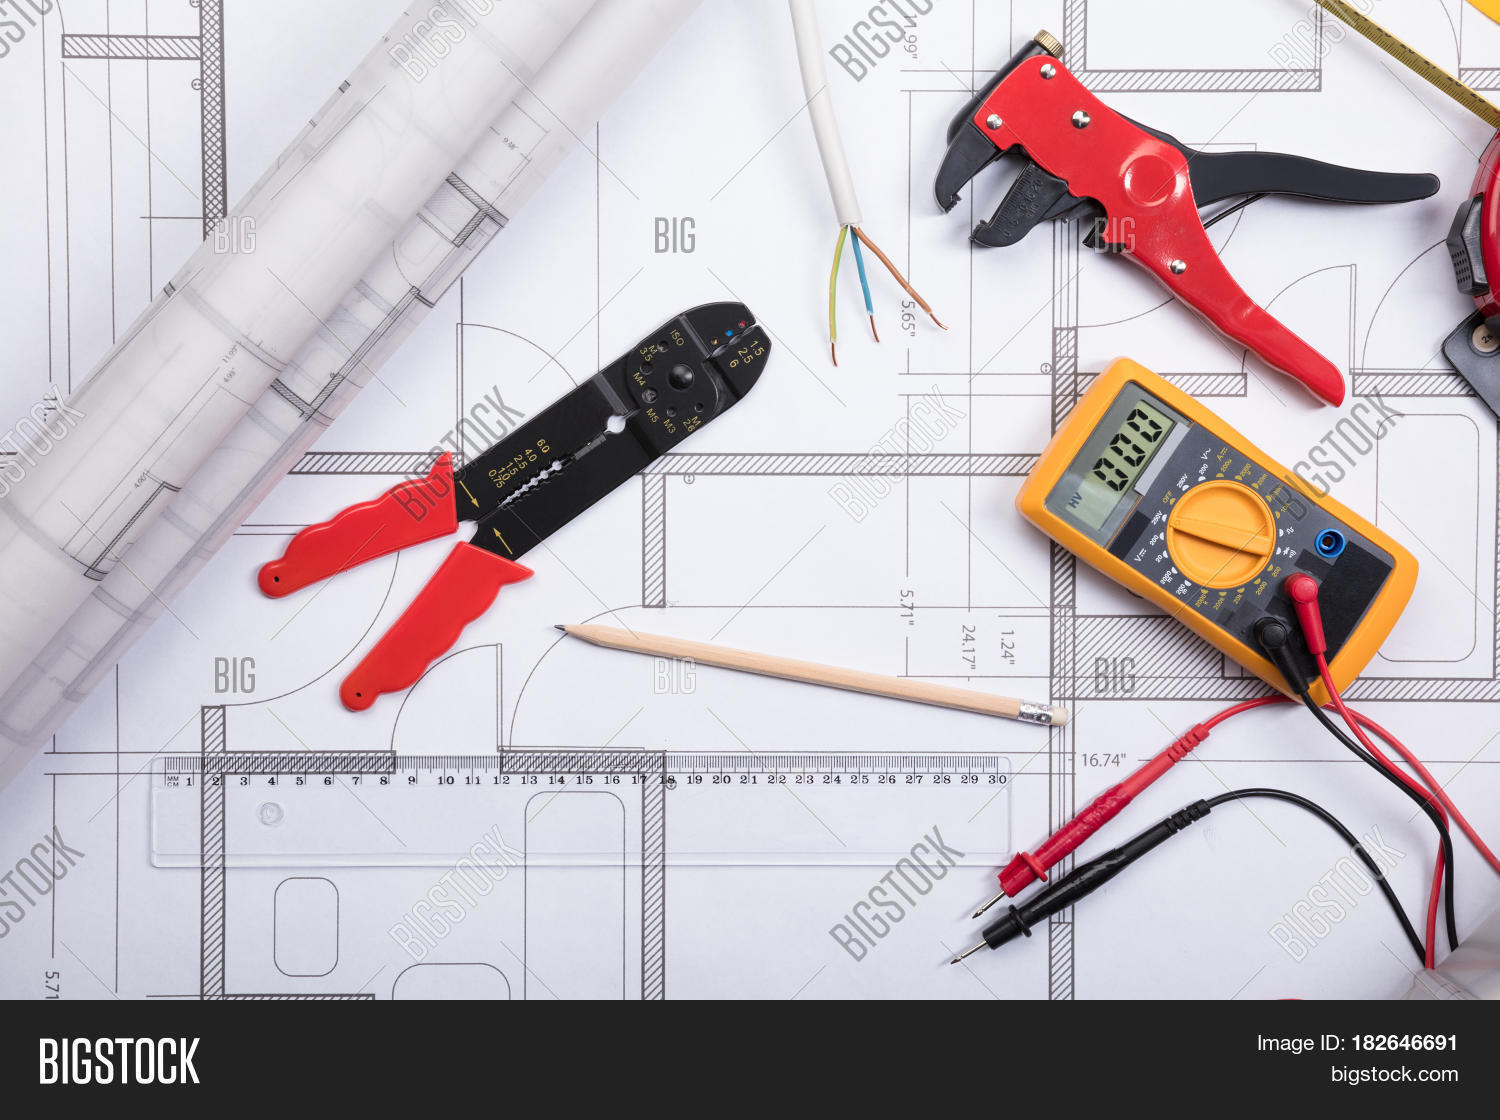 High angle view image photo free trial bigstock high angle view of electrical instrument with tools and digital multimeter on a blueprint ccuart Image collections